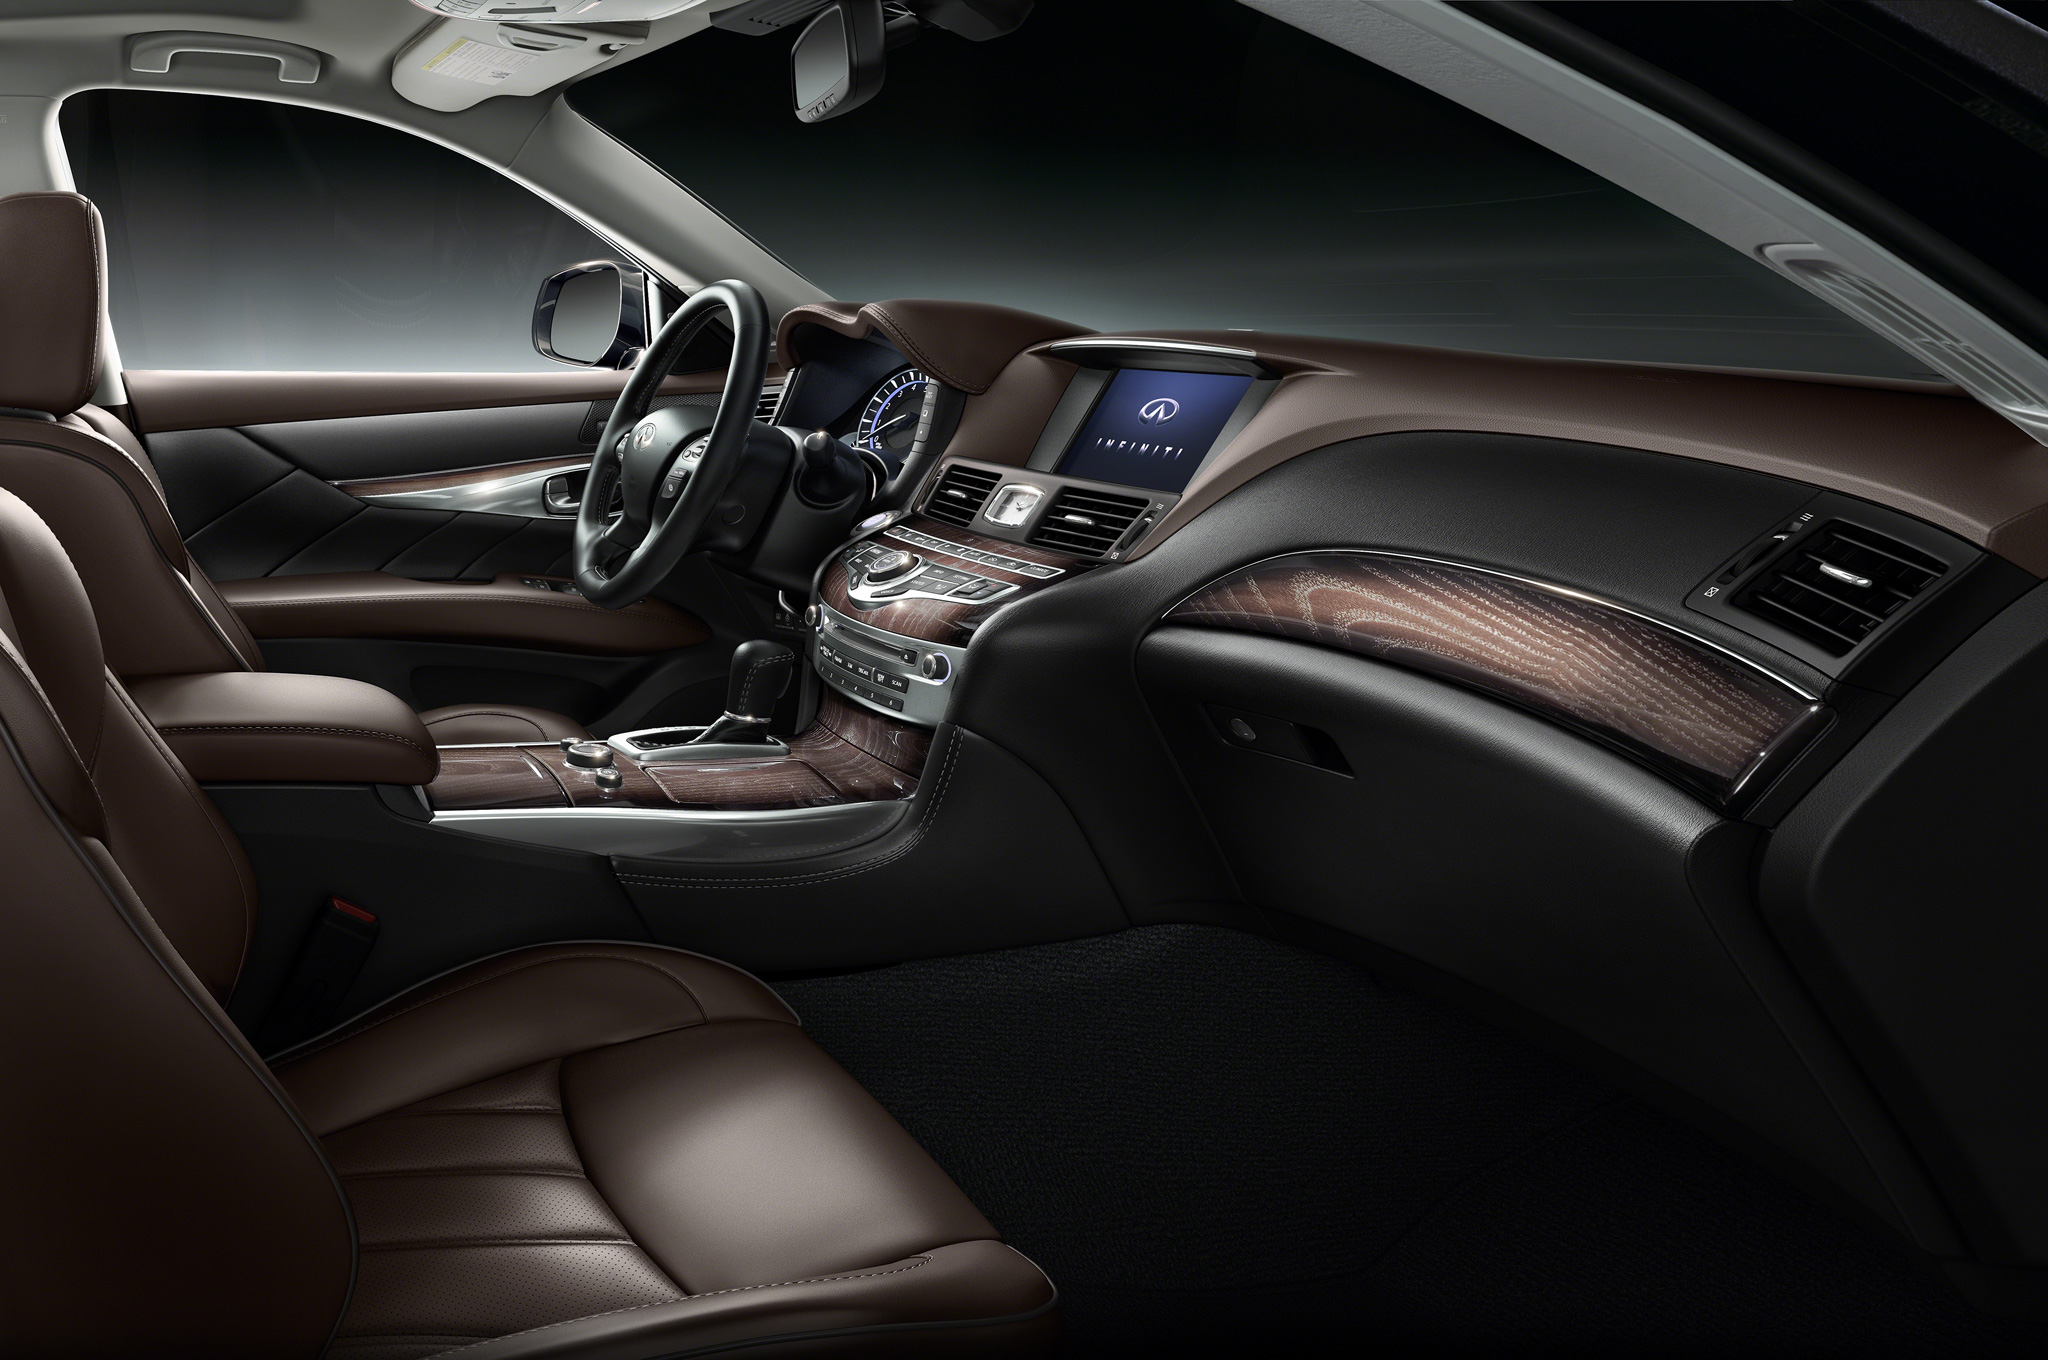 2015 Infiniti Q70l Cockpit And Front Interior (View 5 of 10)